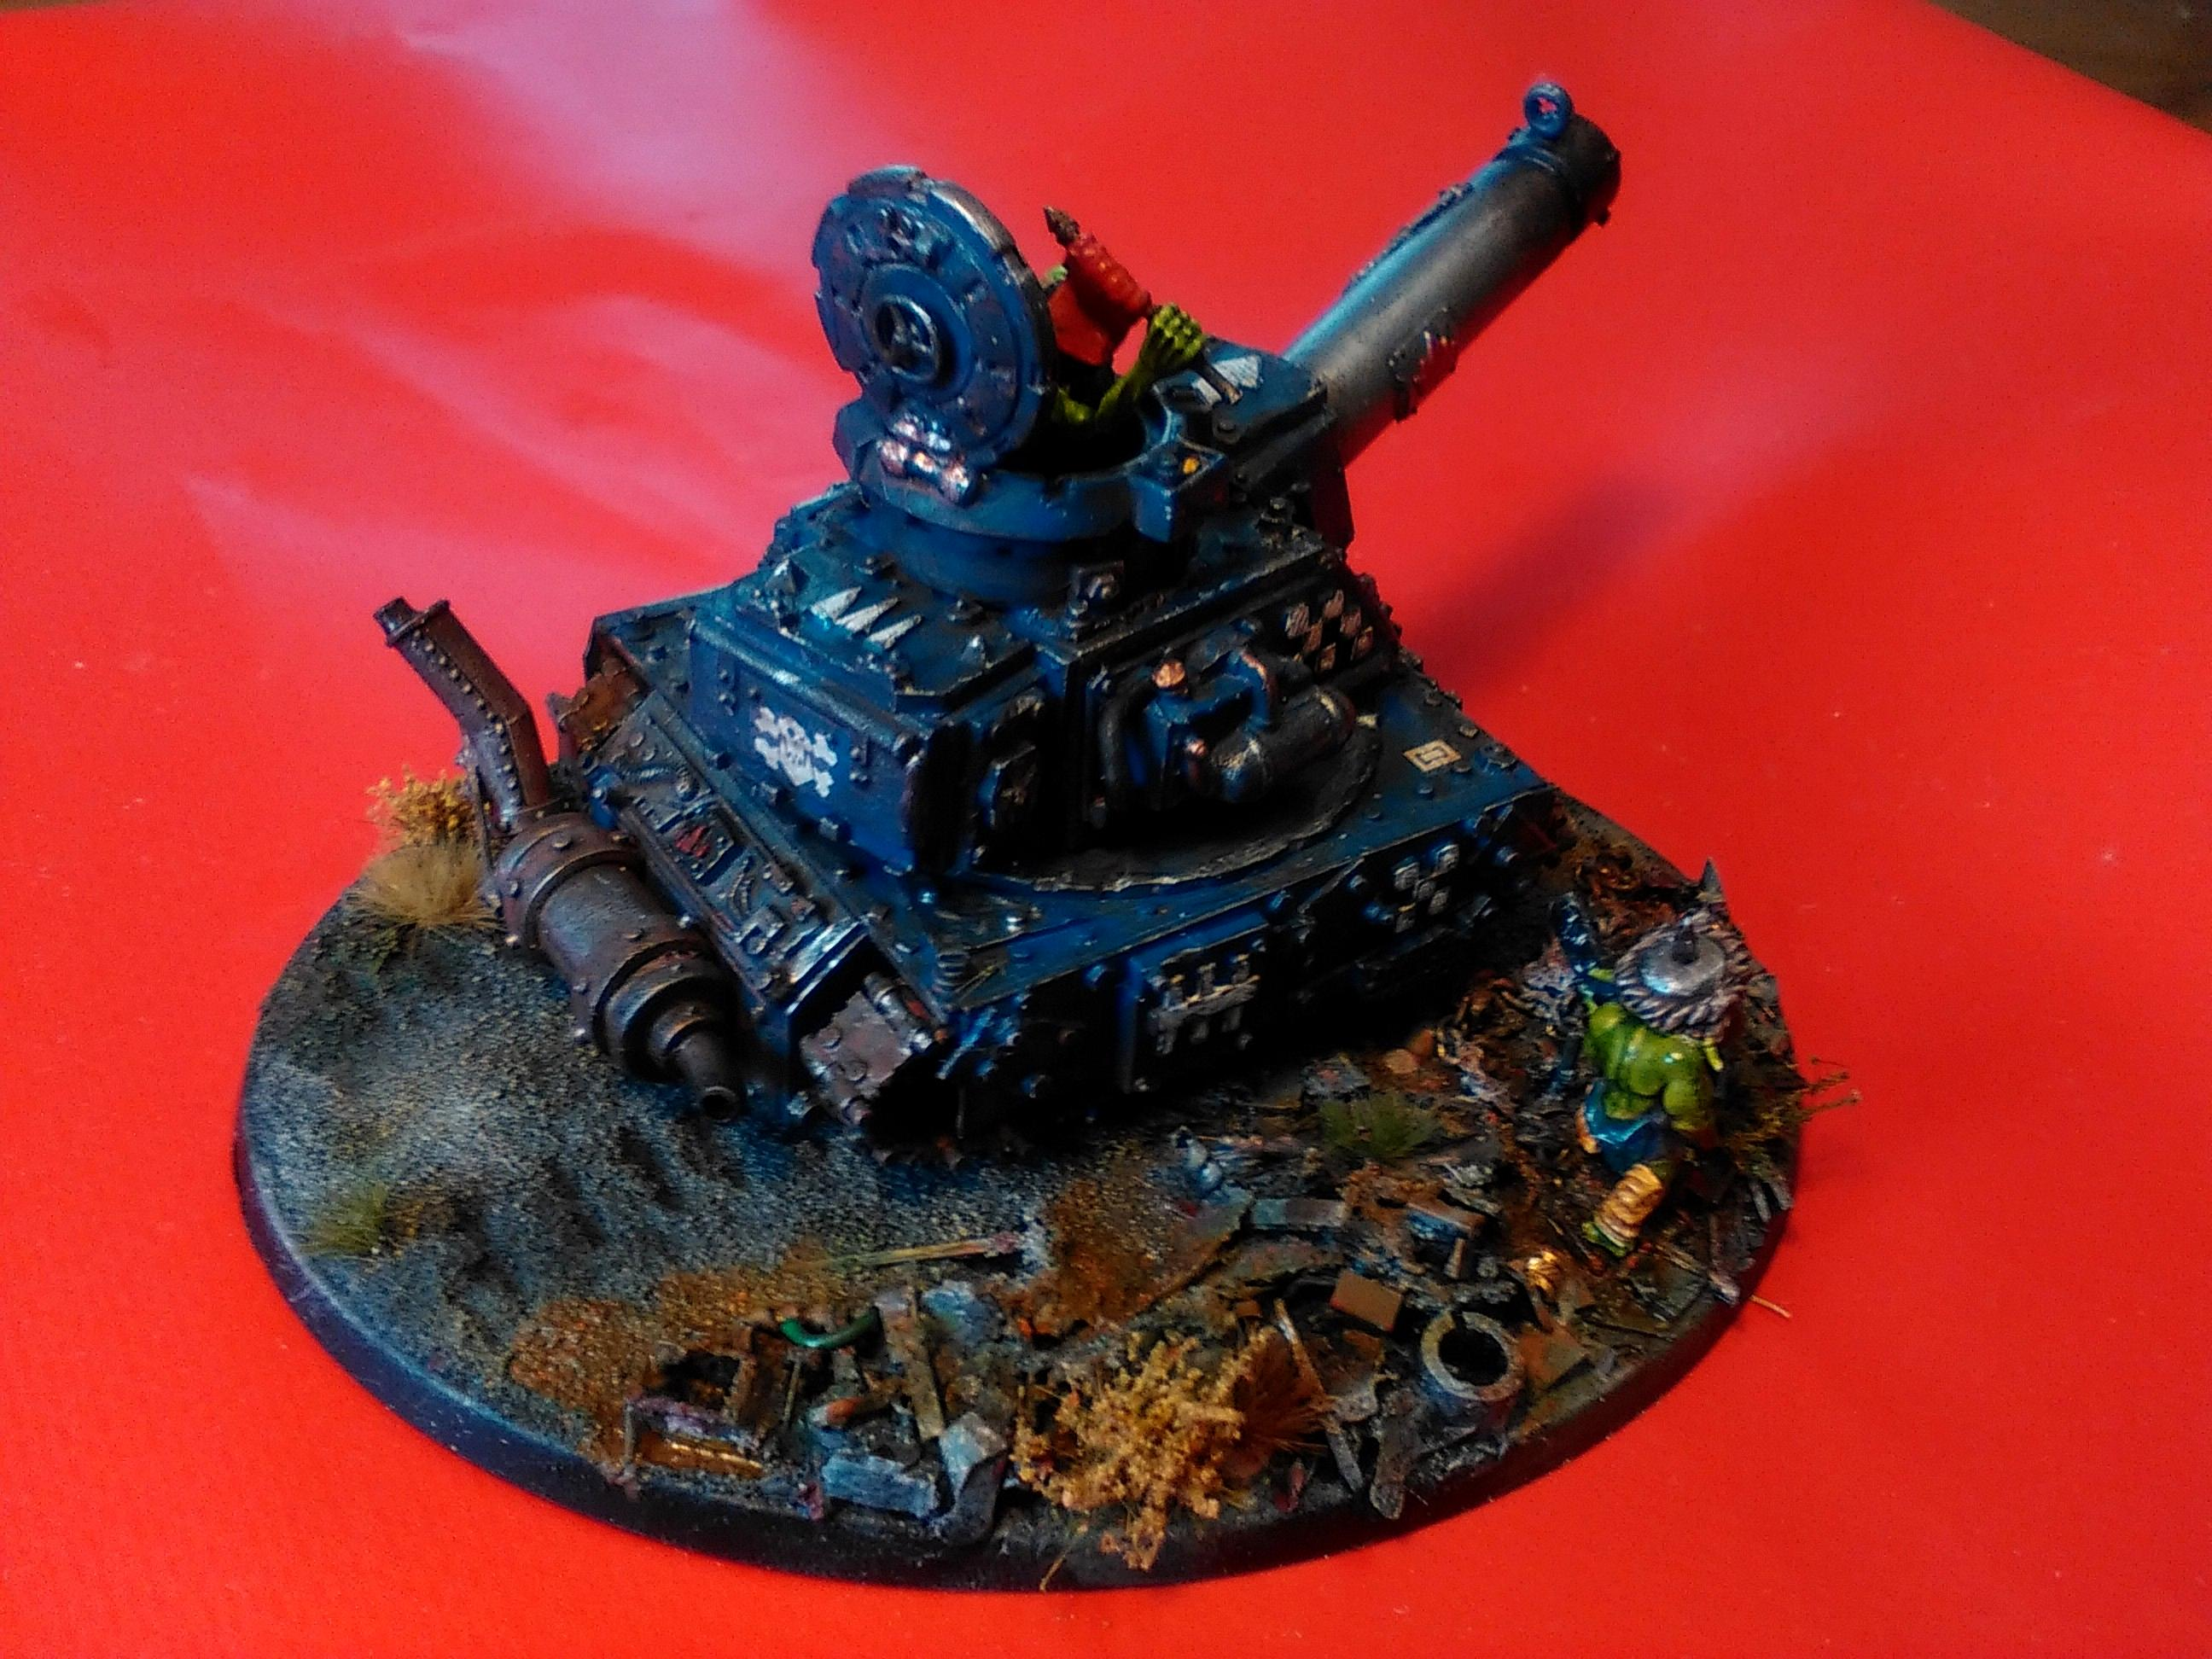 Conversion, Grot Conversion, Grot Tank, Grots, Kitbash, Kitbashed, Ork Conversions, Ork Coustom Made Vehicles, Orks, Scratch Build, Warhammer 40,000